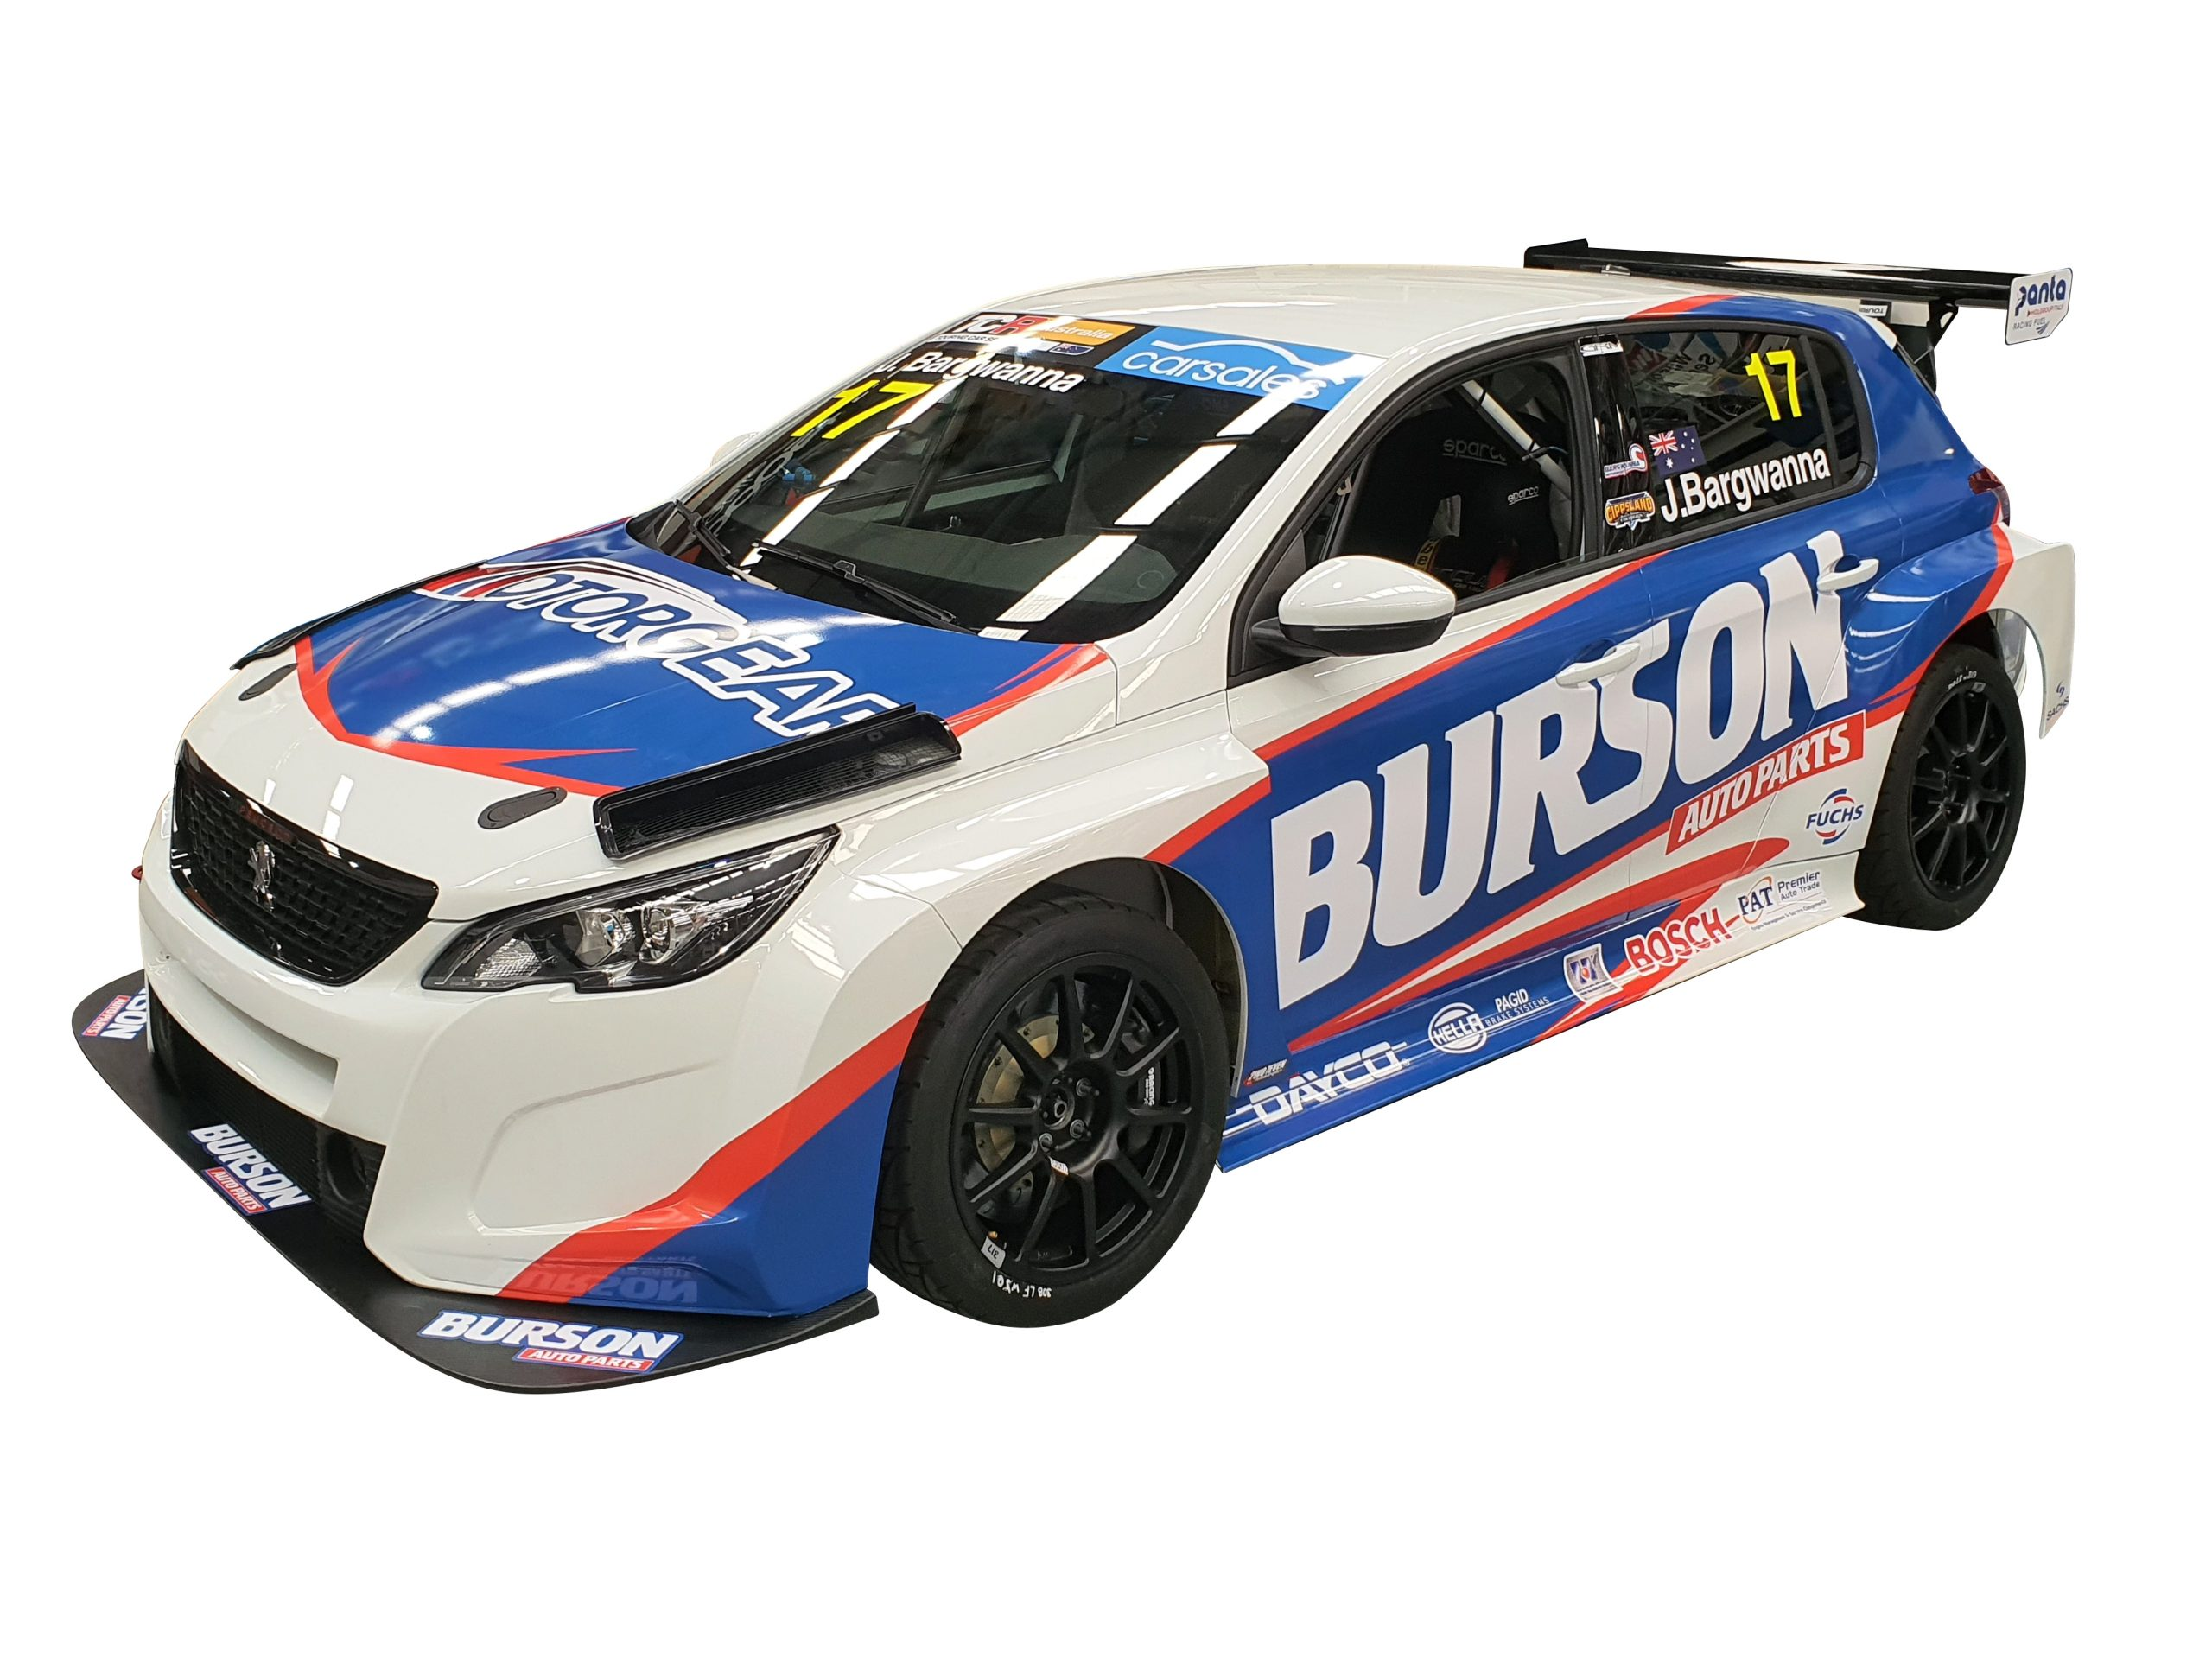 BURSON AUTO PARTS RACING TCR TEAM HITS THE TRACK WITH GRM